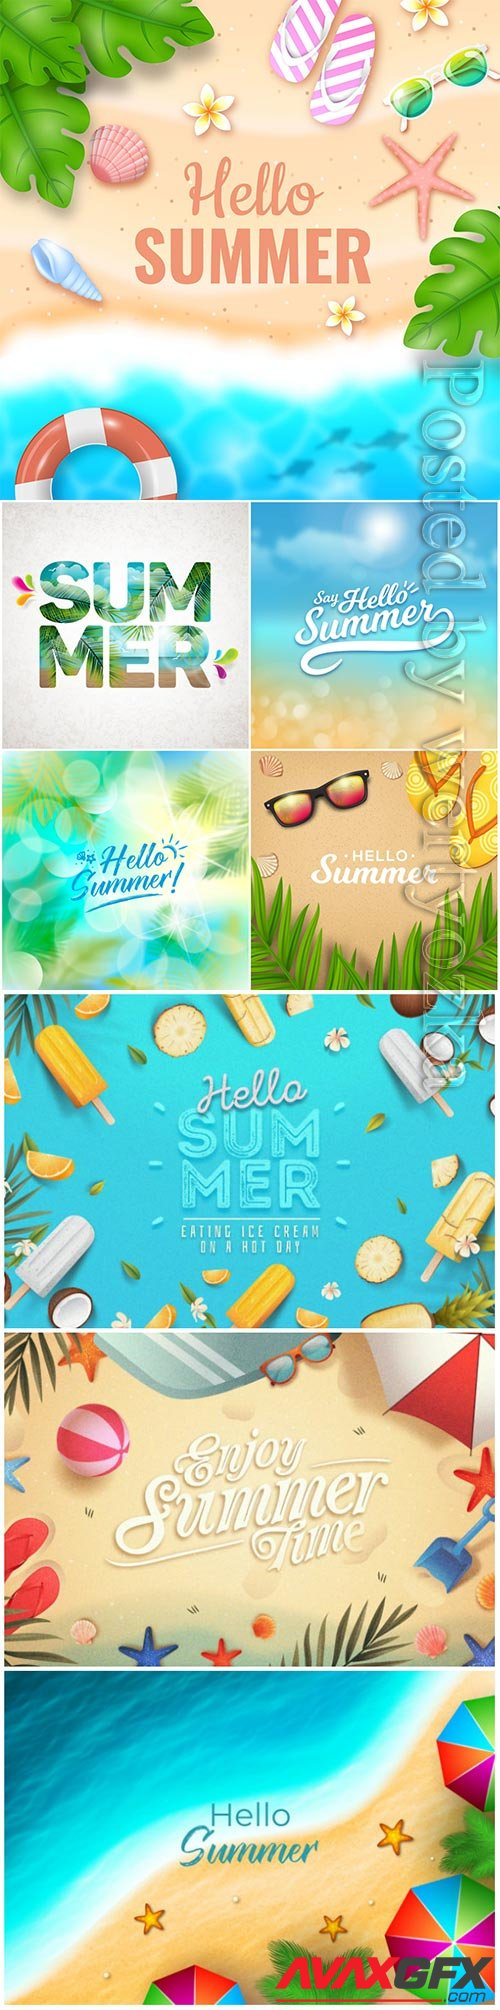 Summer vector collection illustration